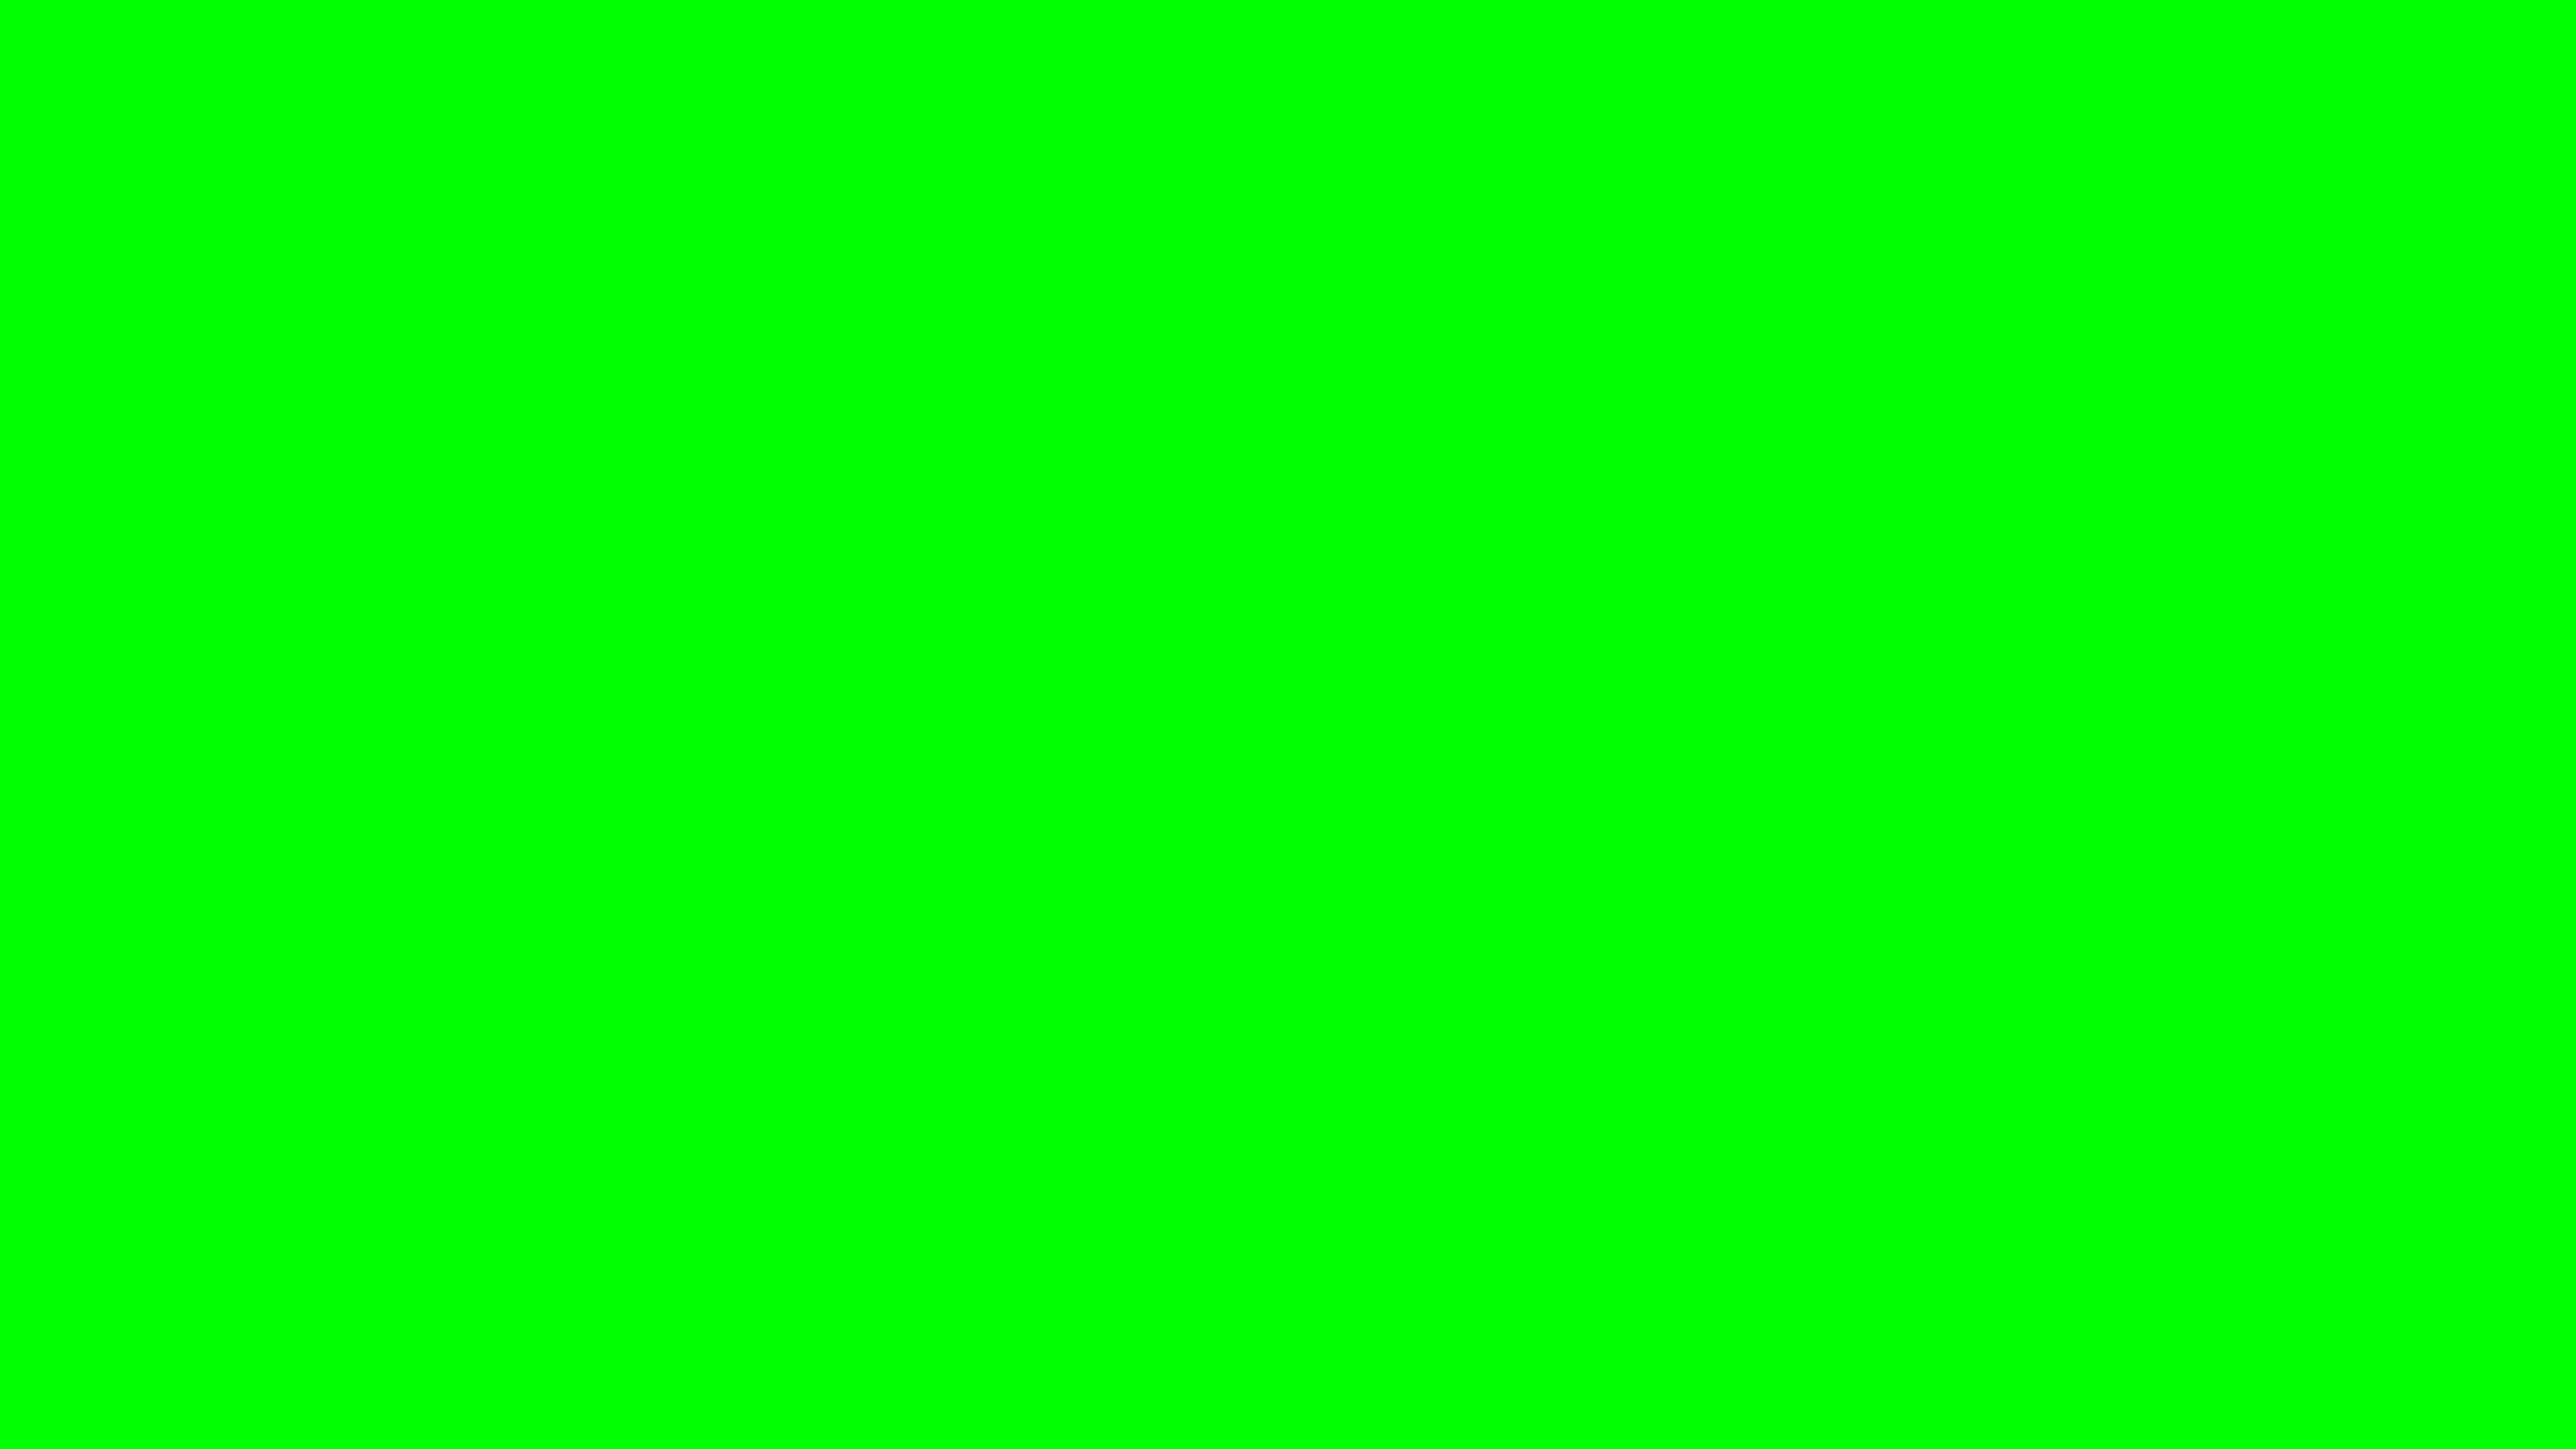 5120x2880 Lime Web Green Solid Color Background